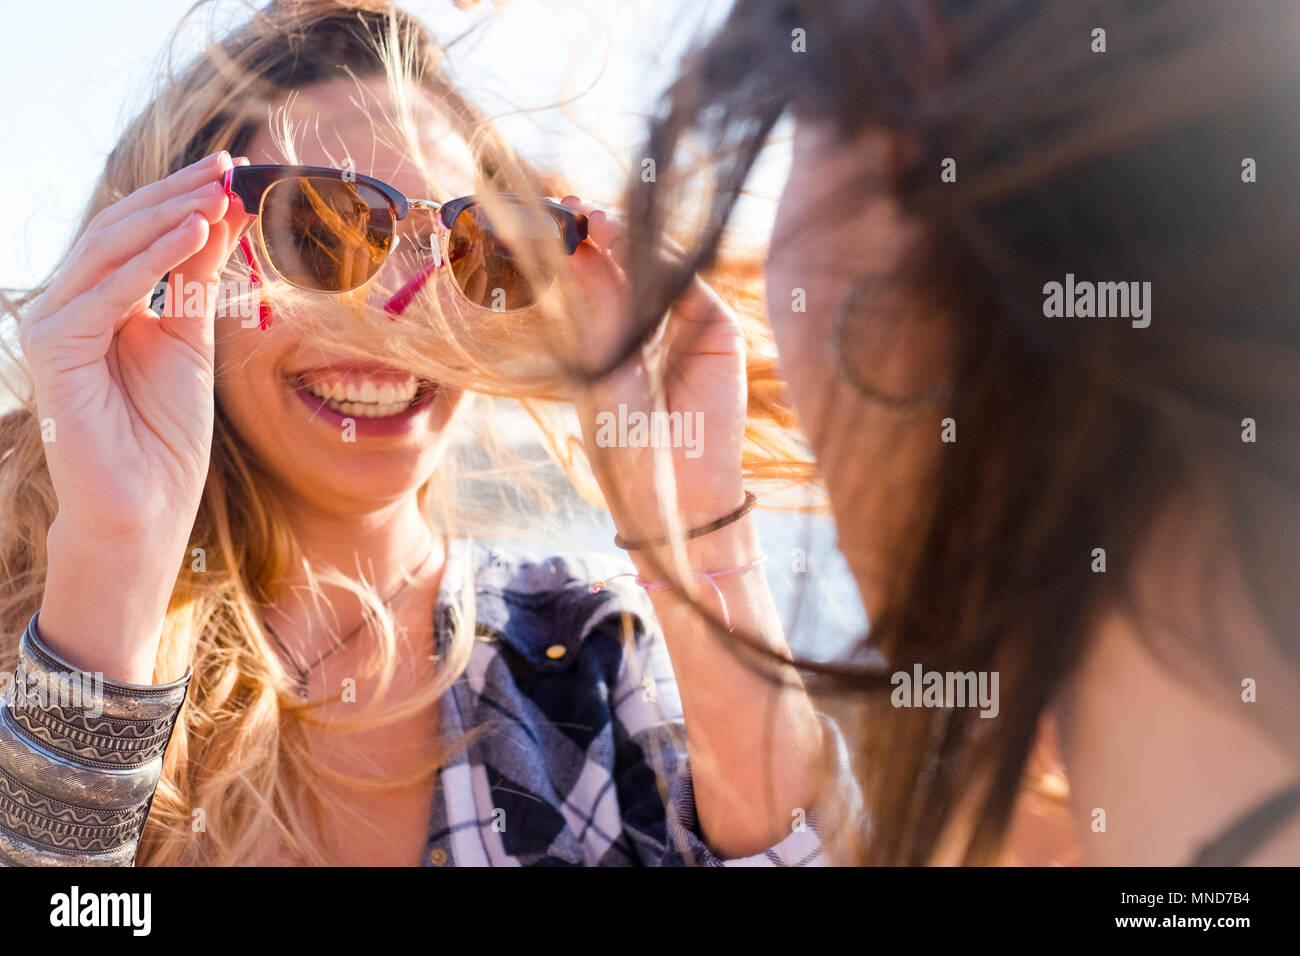 Two young beautiful woman look themselves with up eyeglass in a sunny day. Nice smile viewed from the back of a woman. Friendship between two spanish  - Stock Image